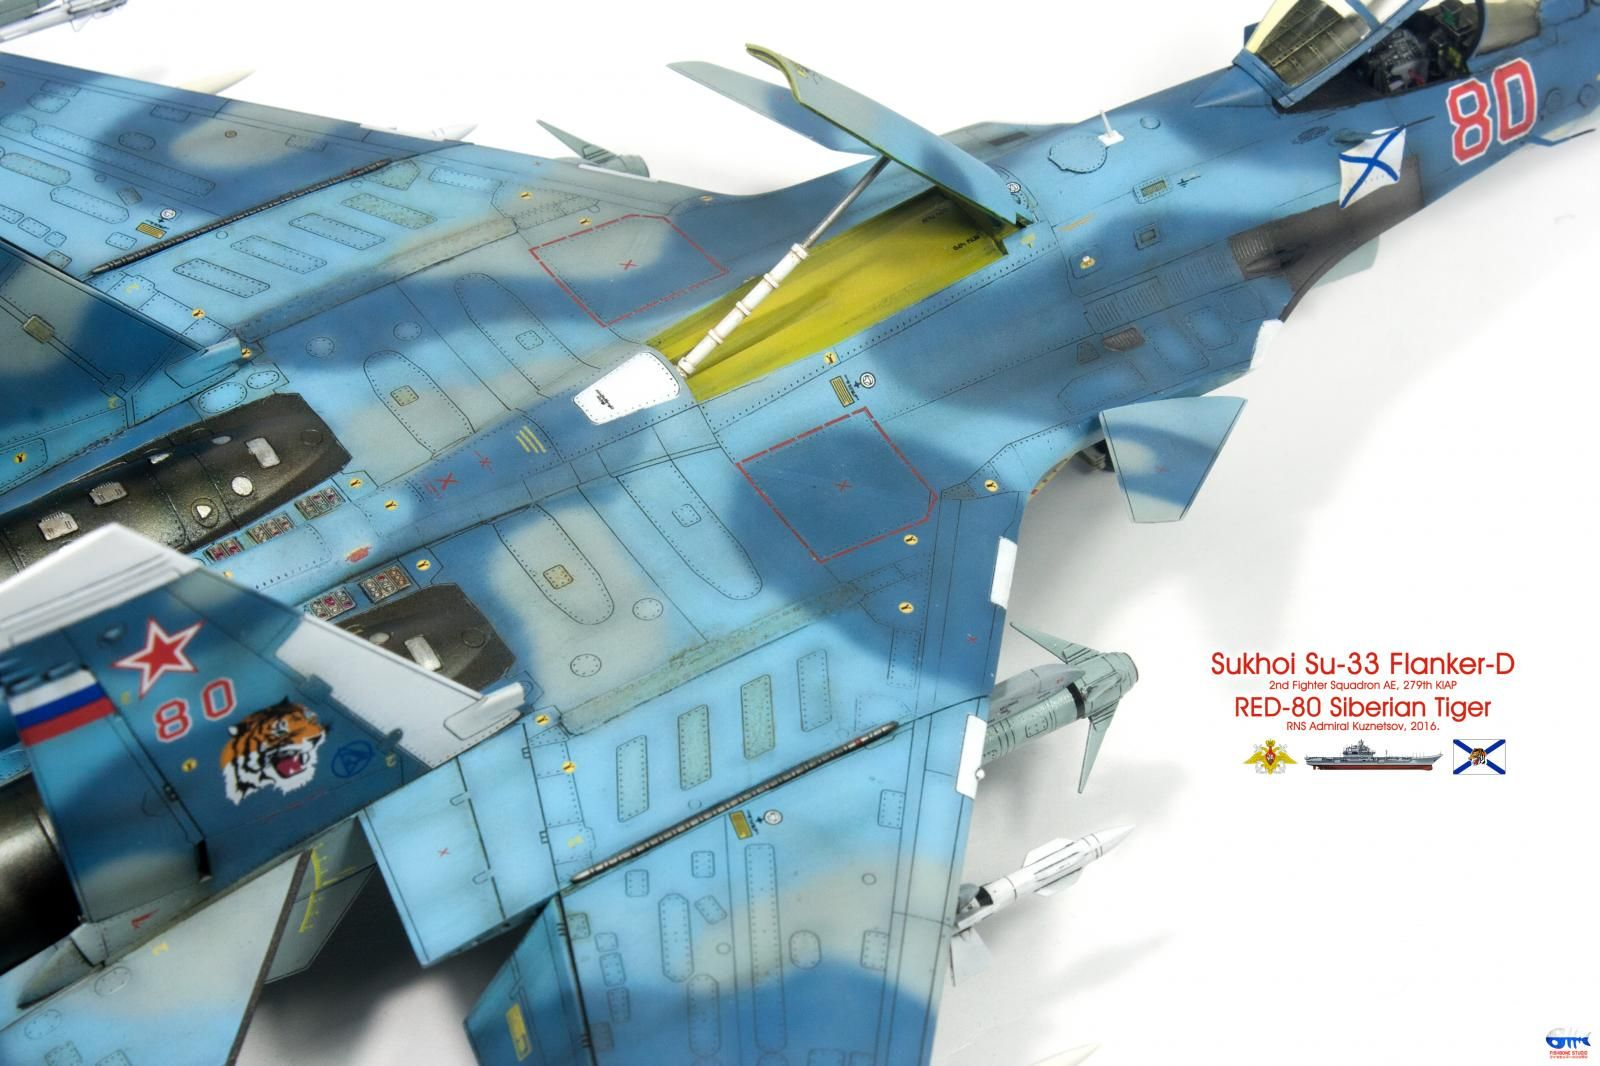 Loading su 33 flanker d carrier based fighter jet su 27 - Su 33 Flanker D By Shiblee Hasan Kinetic 1 48 Sukhoi Su 33 Flanker In Scale Pinterest Sukhoi And Scale